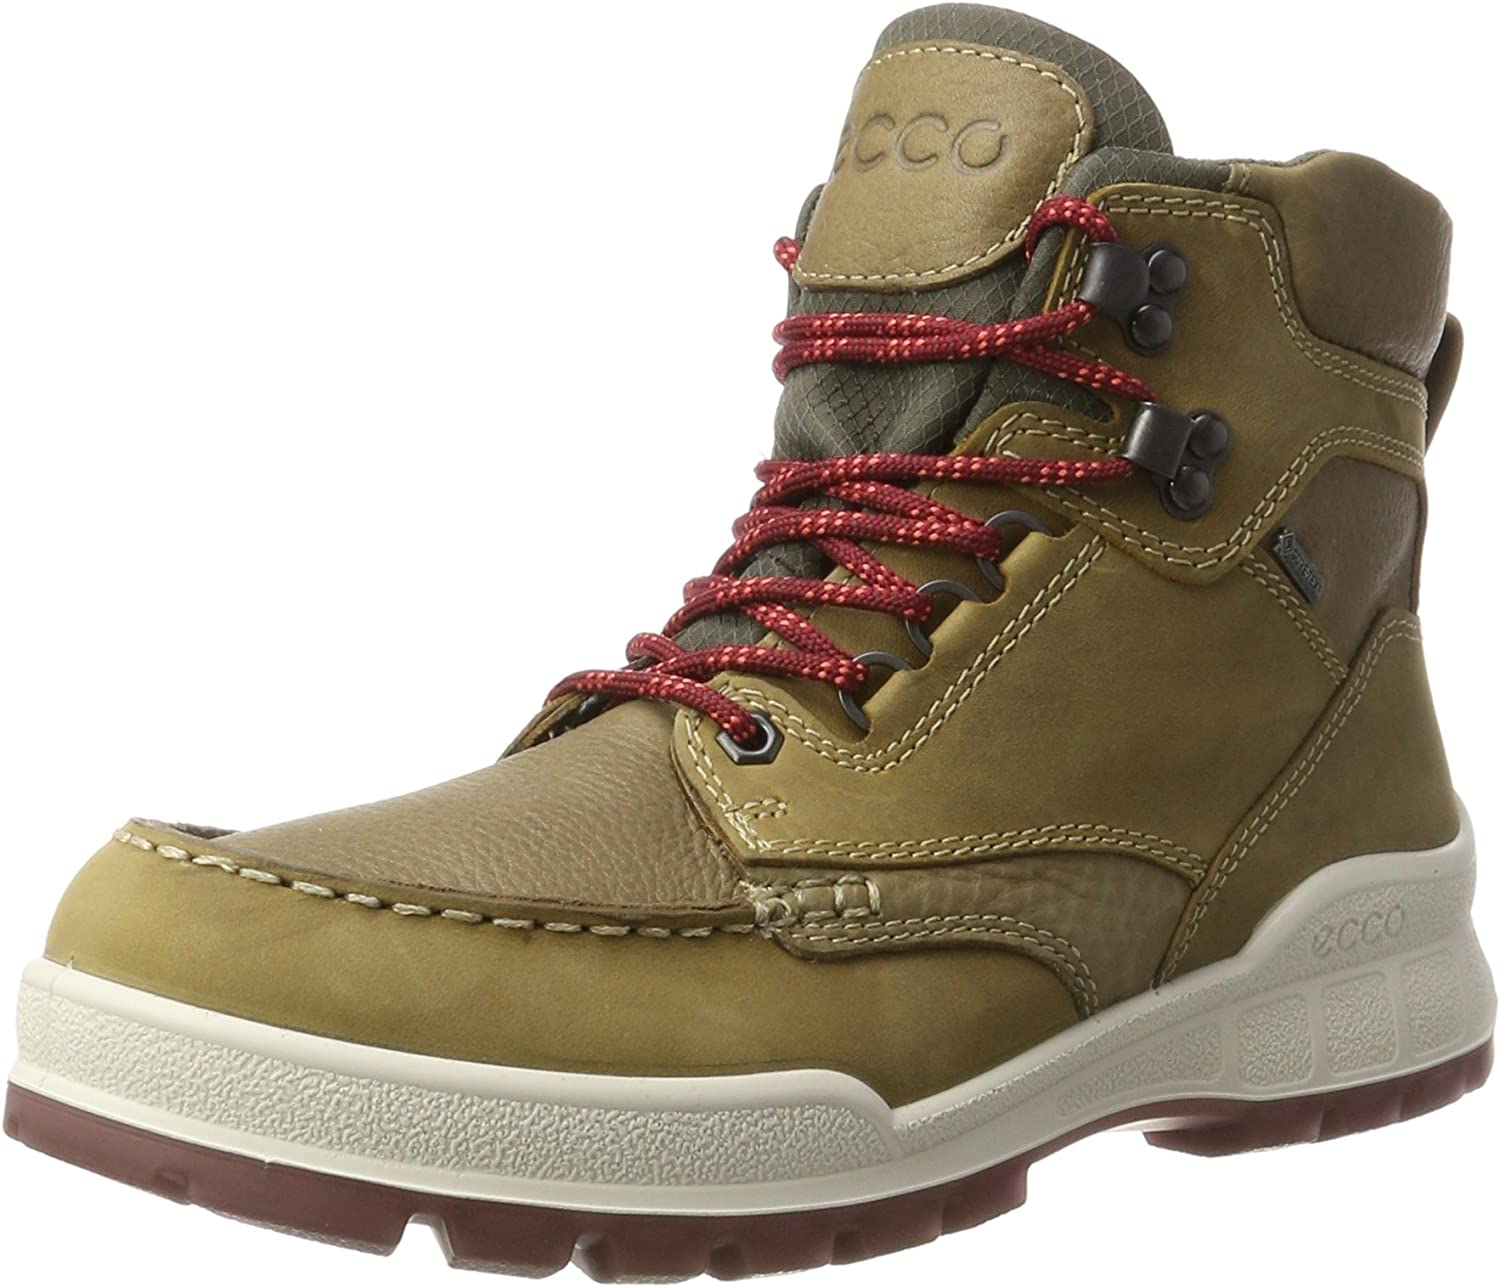 ECCO shoes Womens Track 25 Boot Backpacking Boots